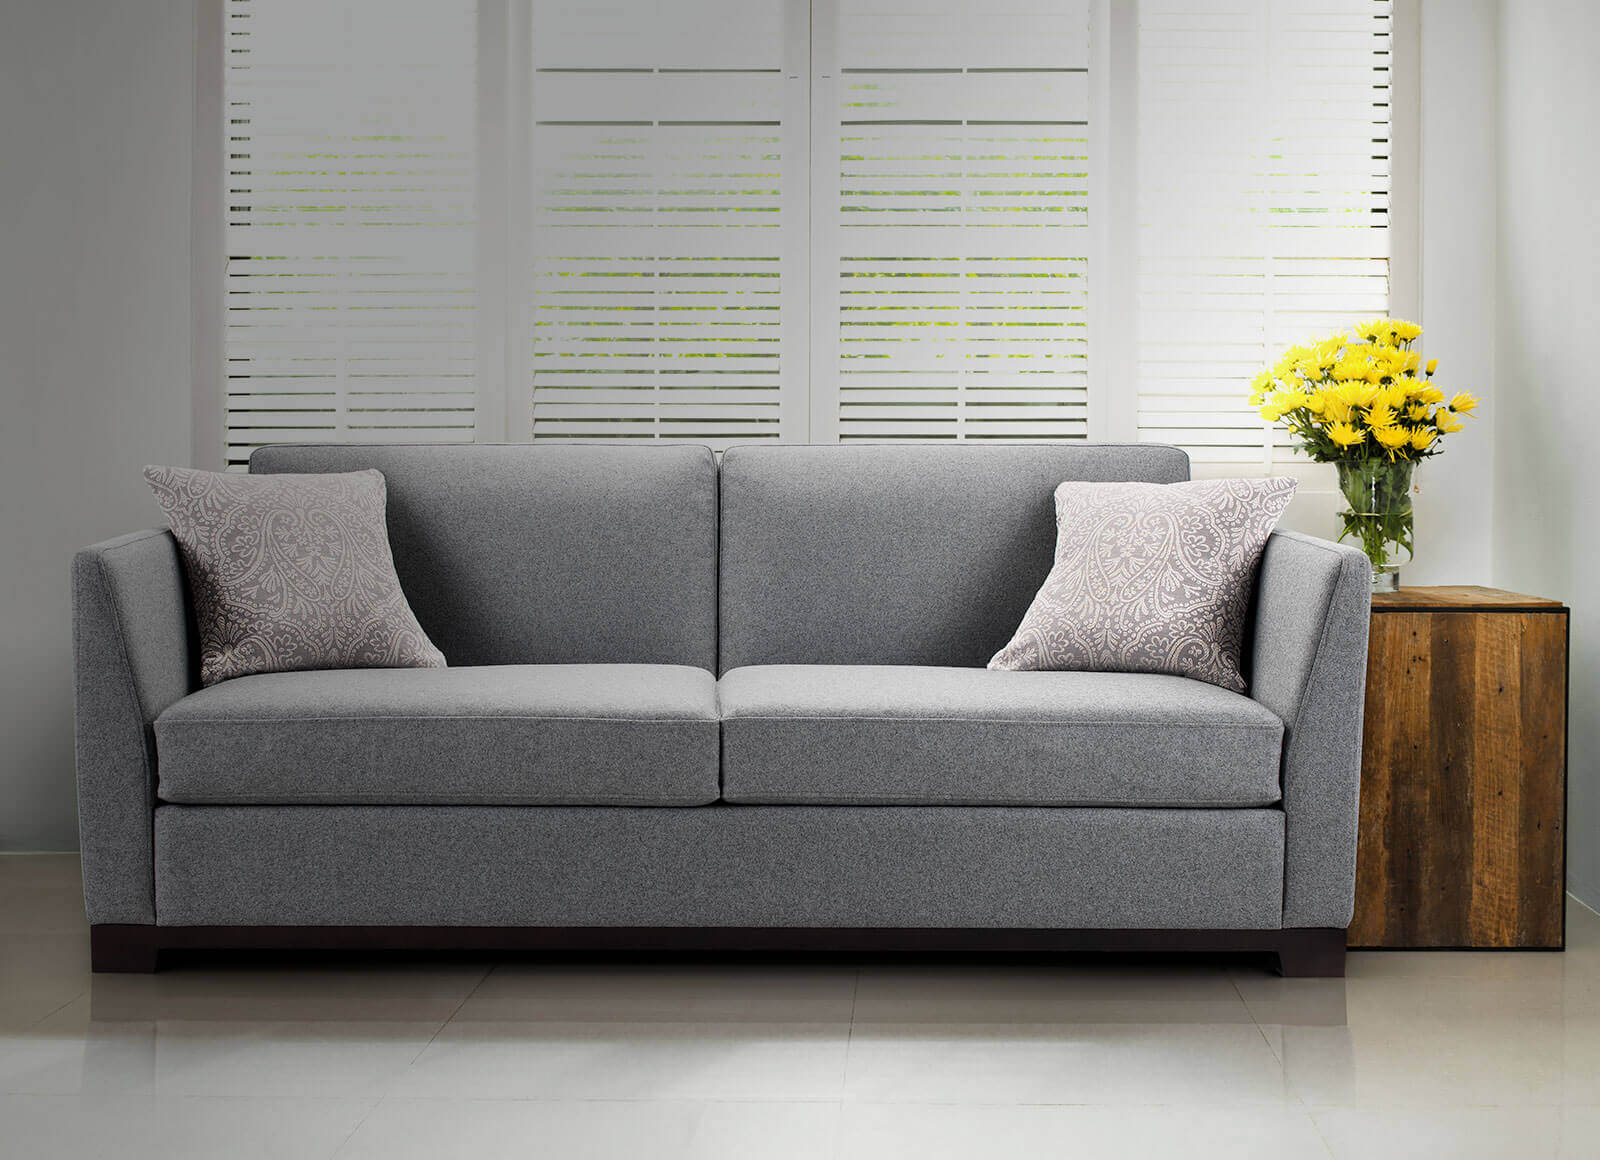 Grey Sofa Bed Fabric Or Leather We Love